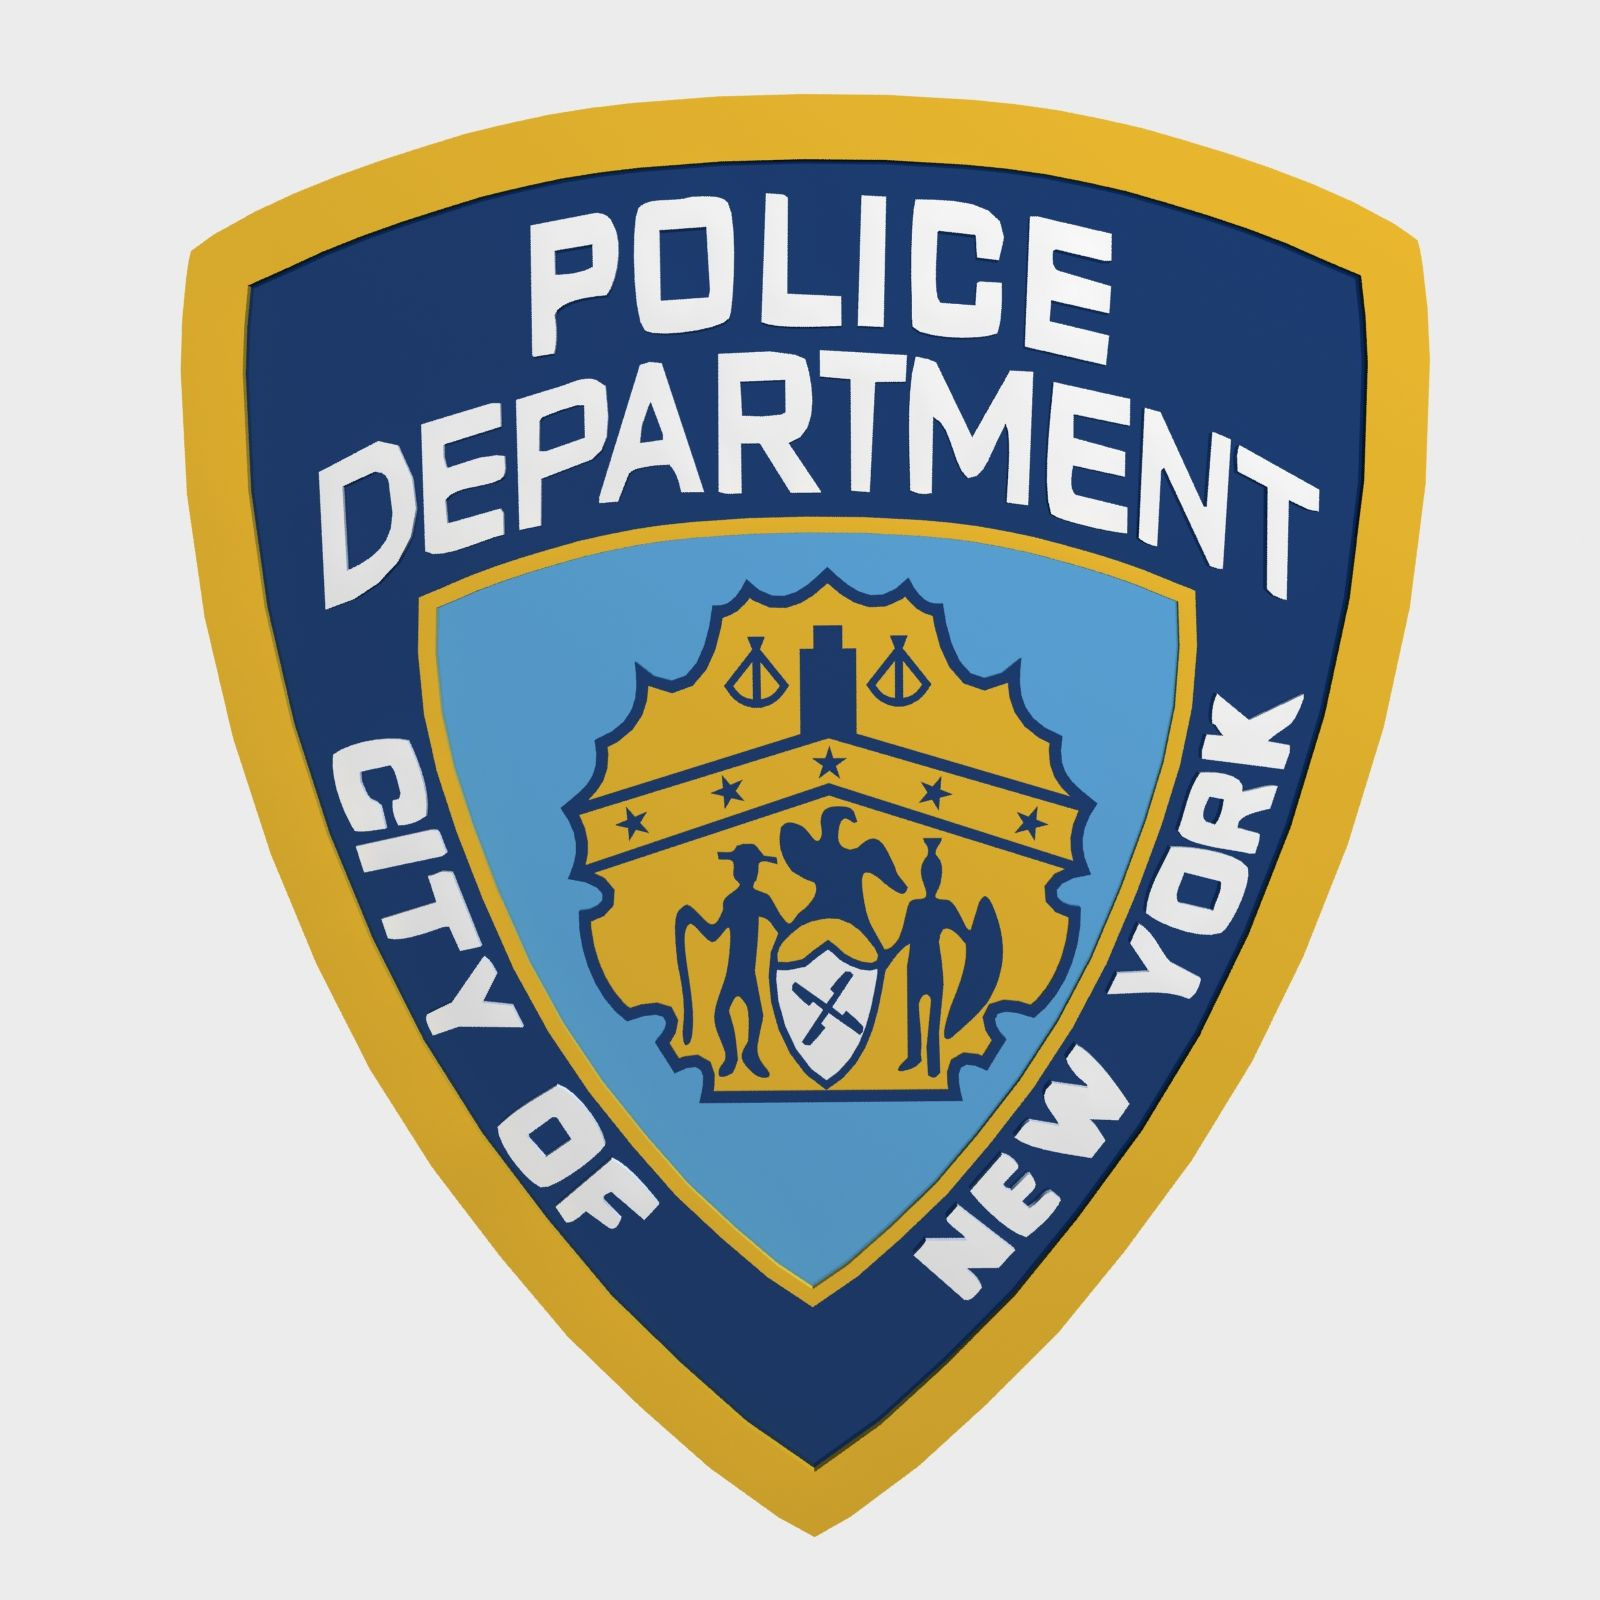 NYPD Police Department logo Police, NYPD, logo,